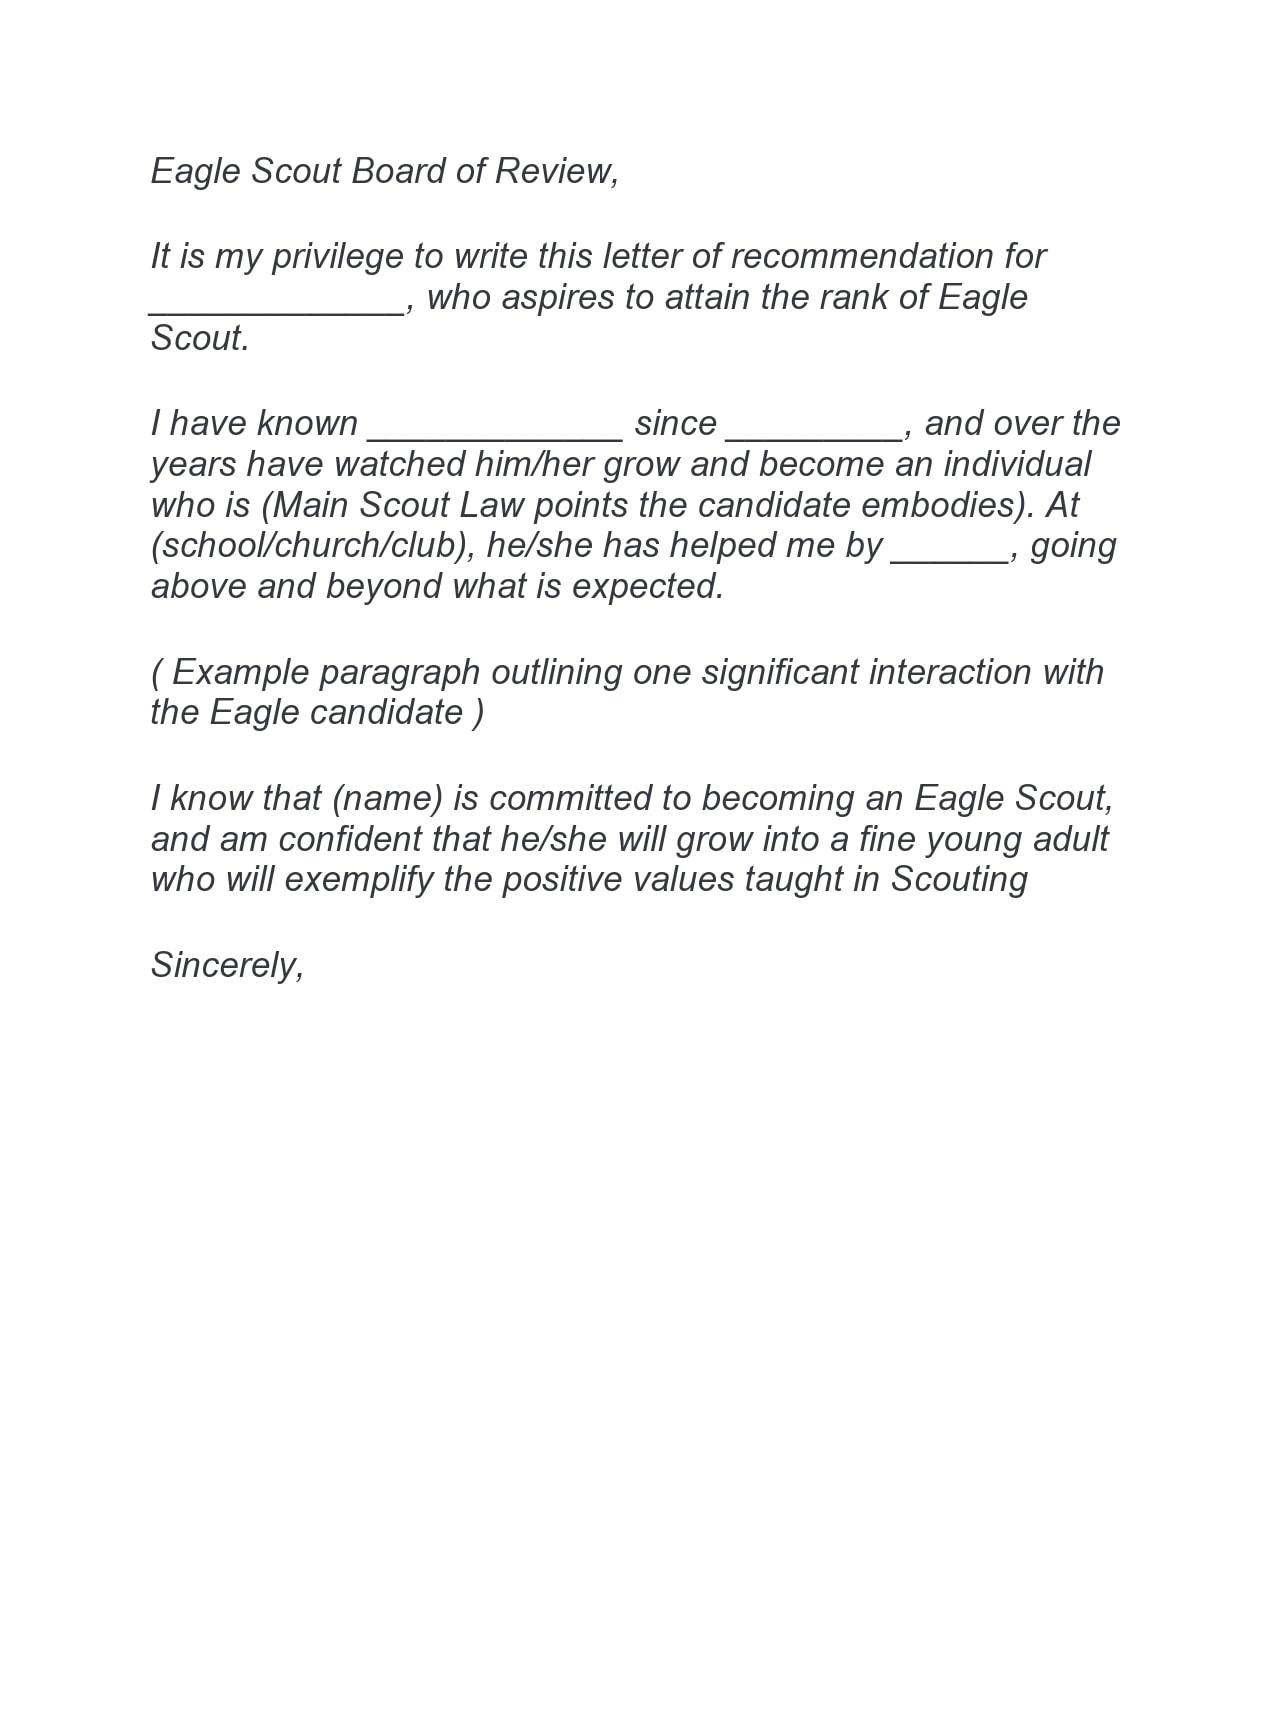 eagle scout letter of recommendation 06